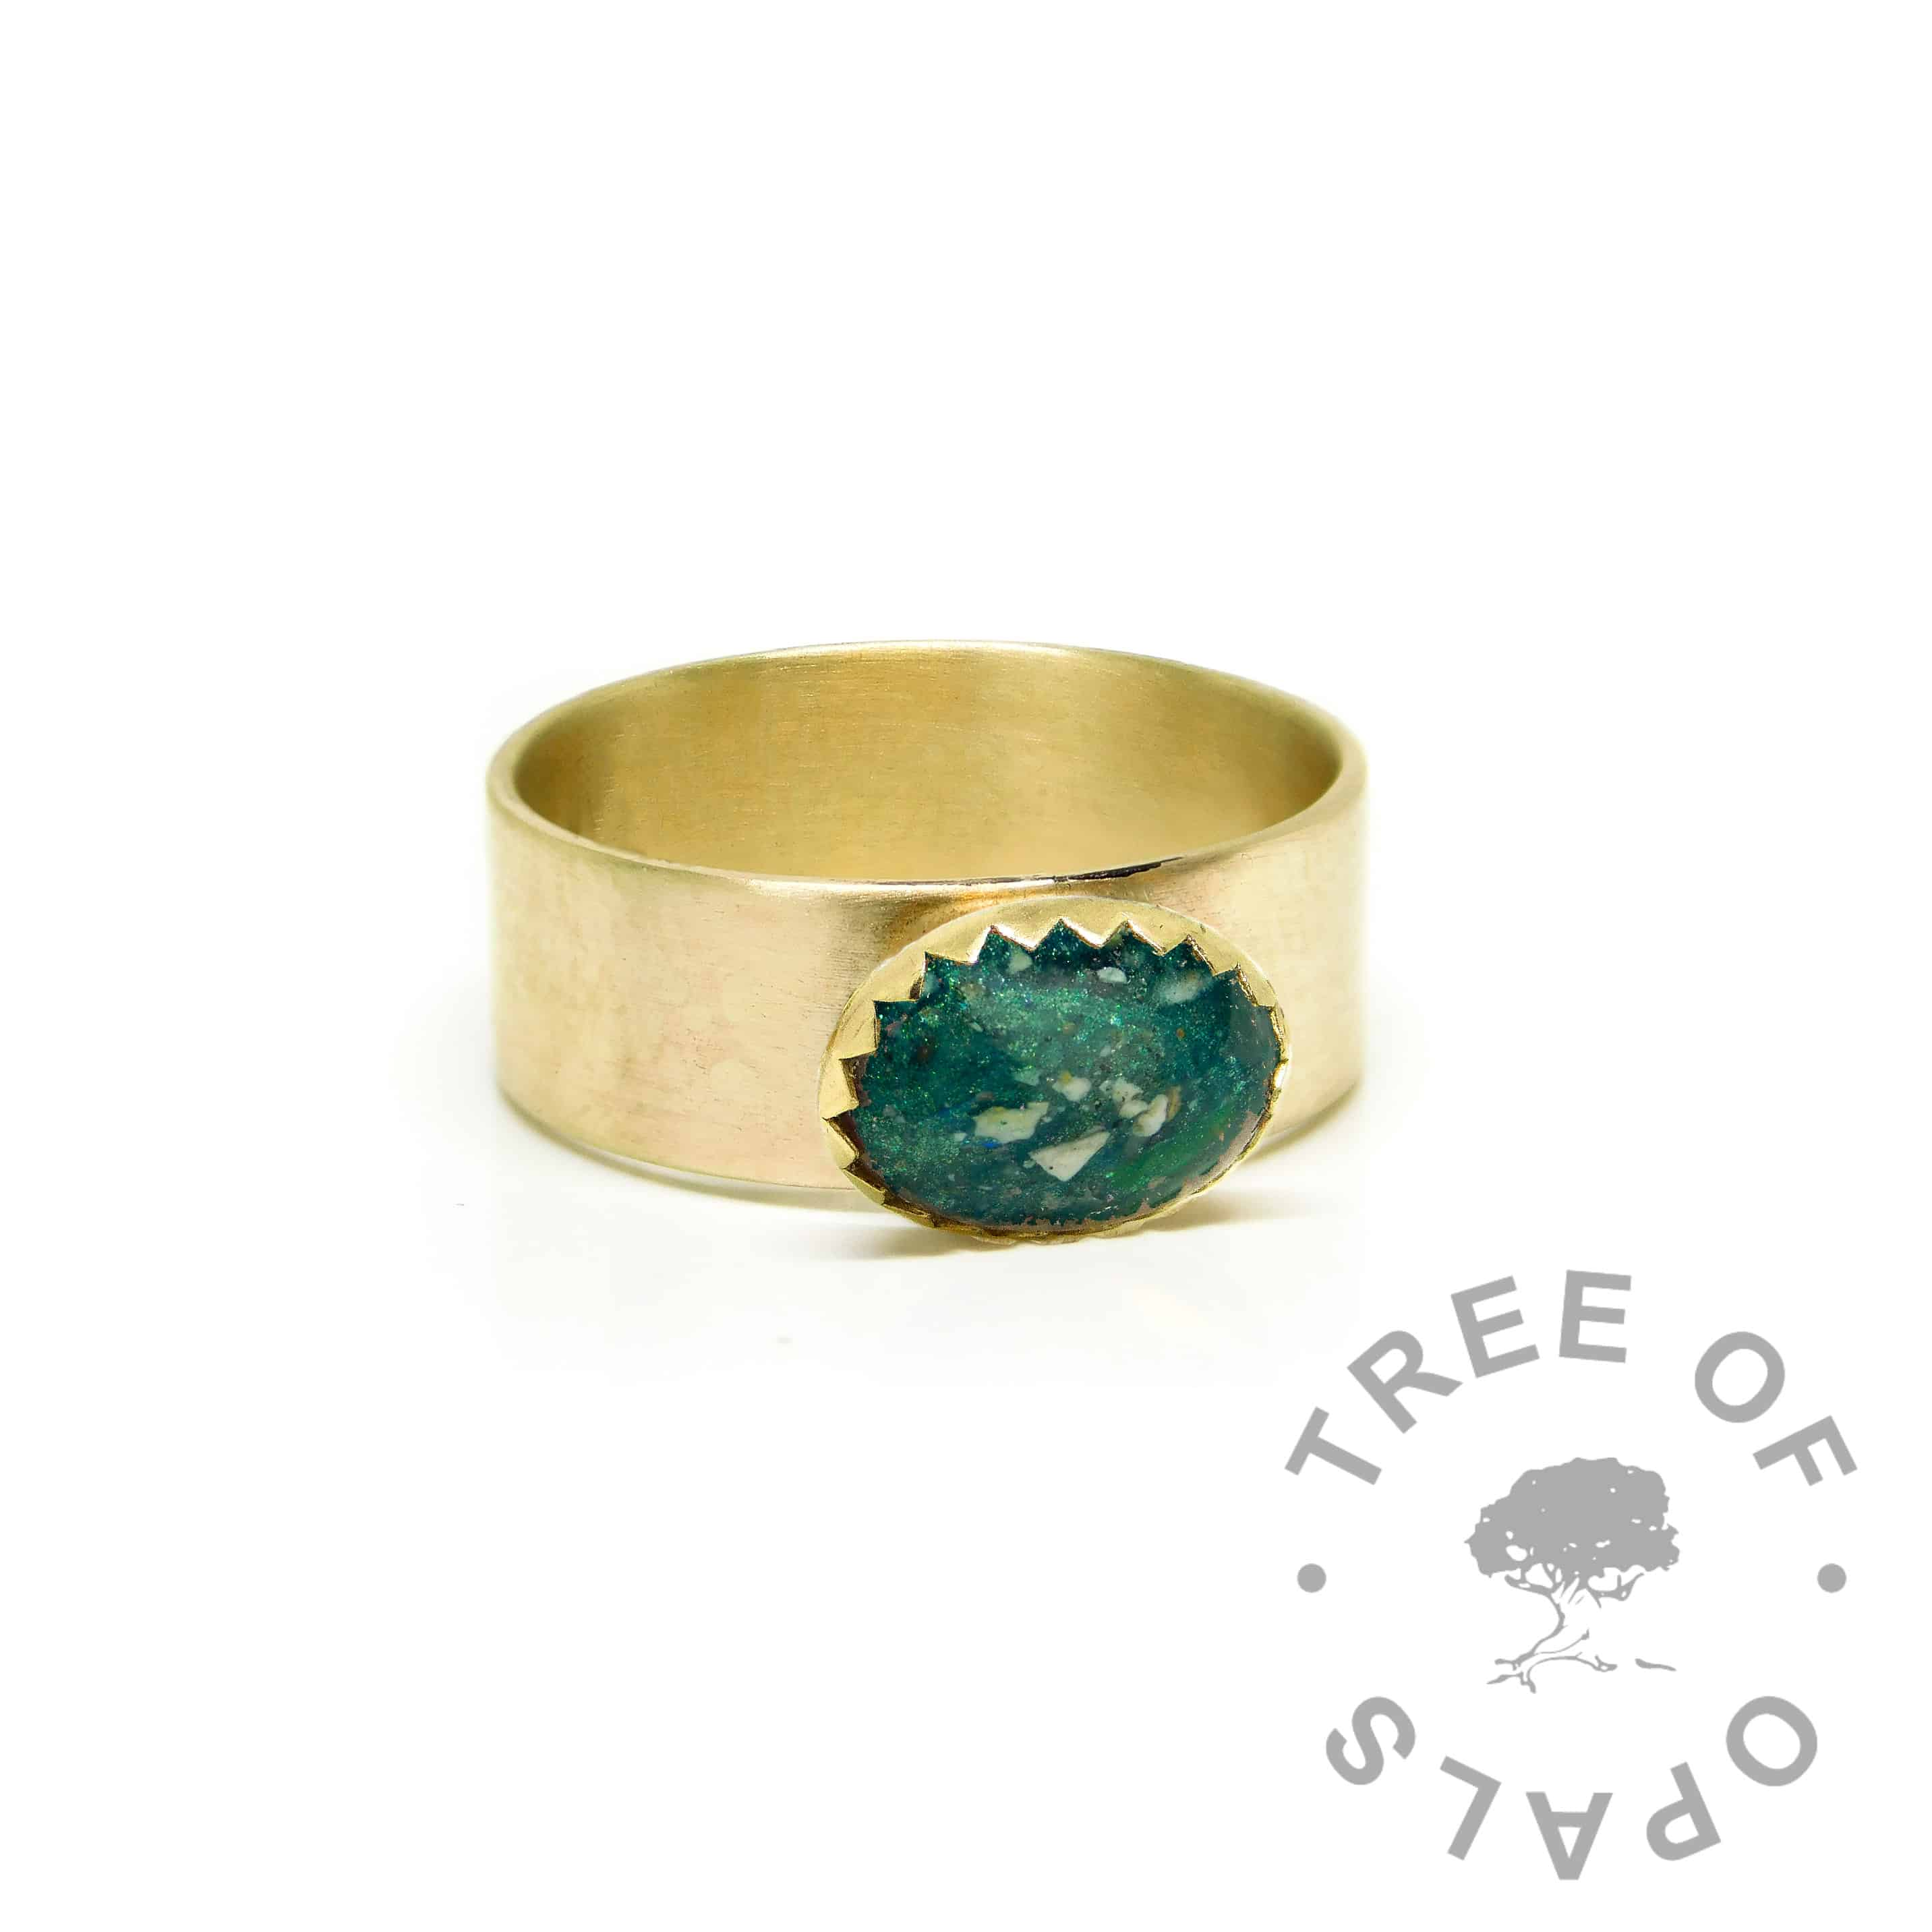 chunky gold ashes ring wide band, 9ct gold brushed band, mermaid teal resin sparkle mix. Mockup